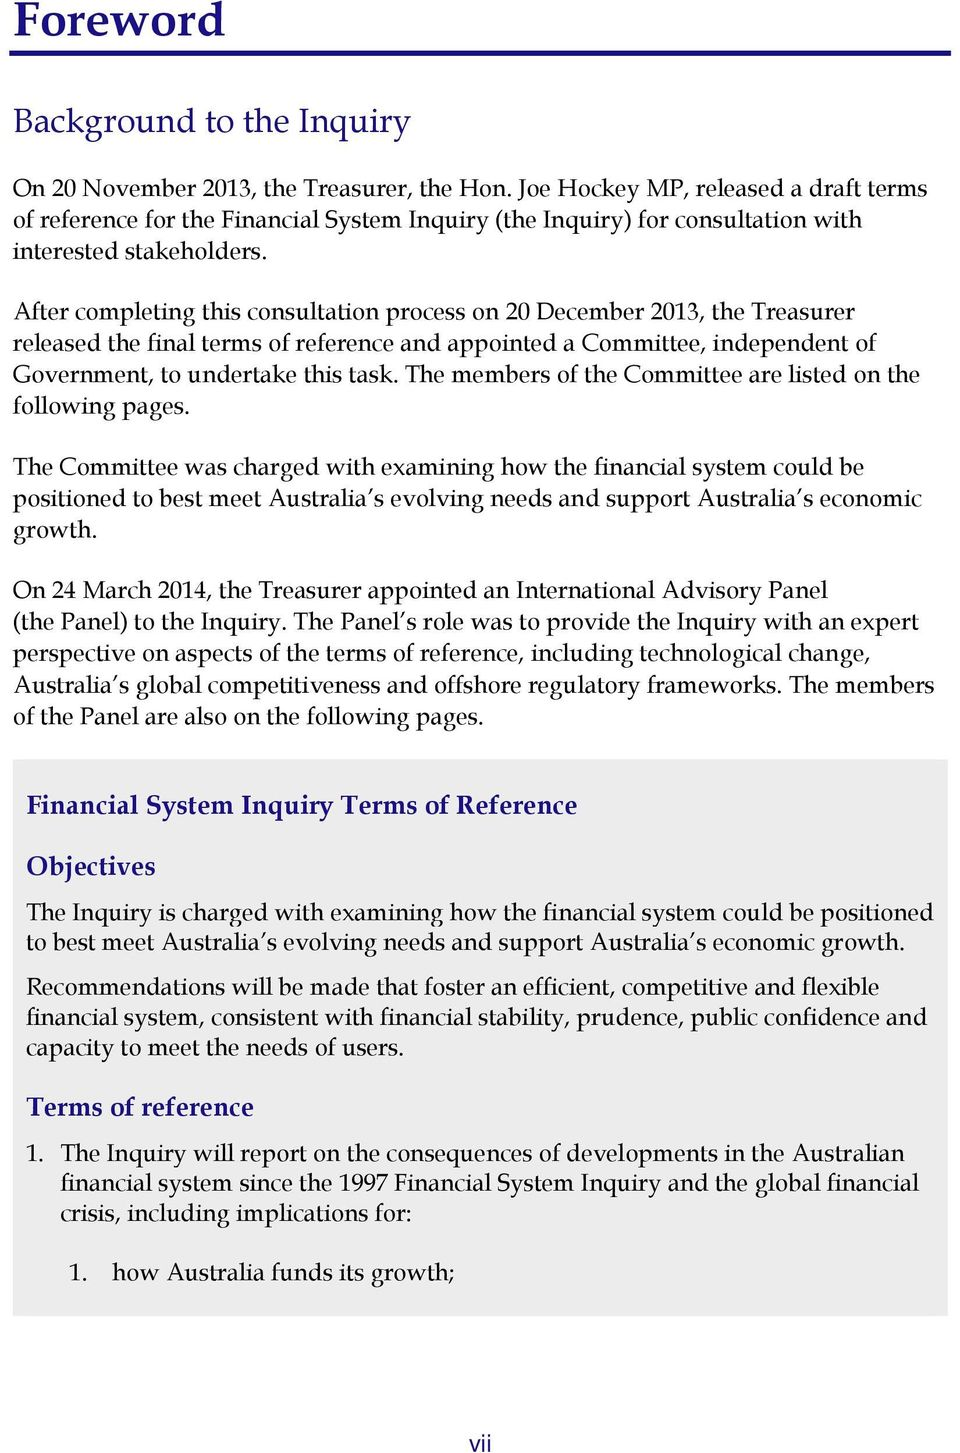 After completing this consultation process on 20 December 2013, the Treasurer released the final terms of reference and appointed a Committee, independent of Government, to undertake this task.